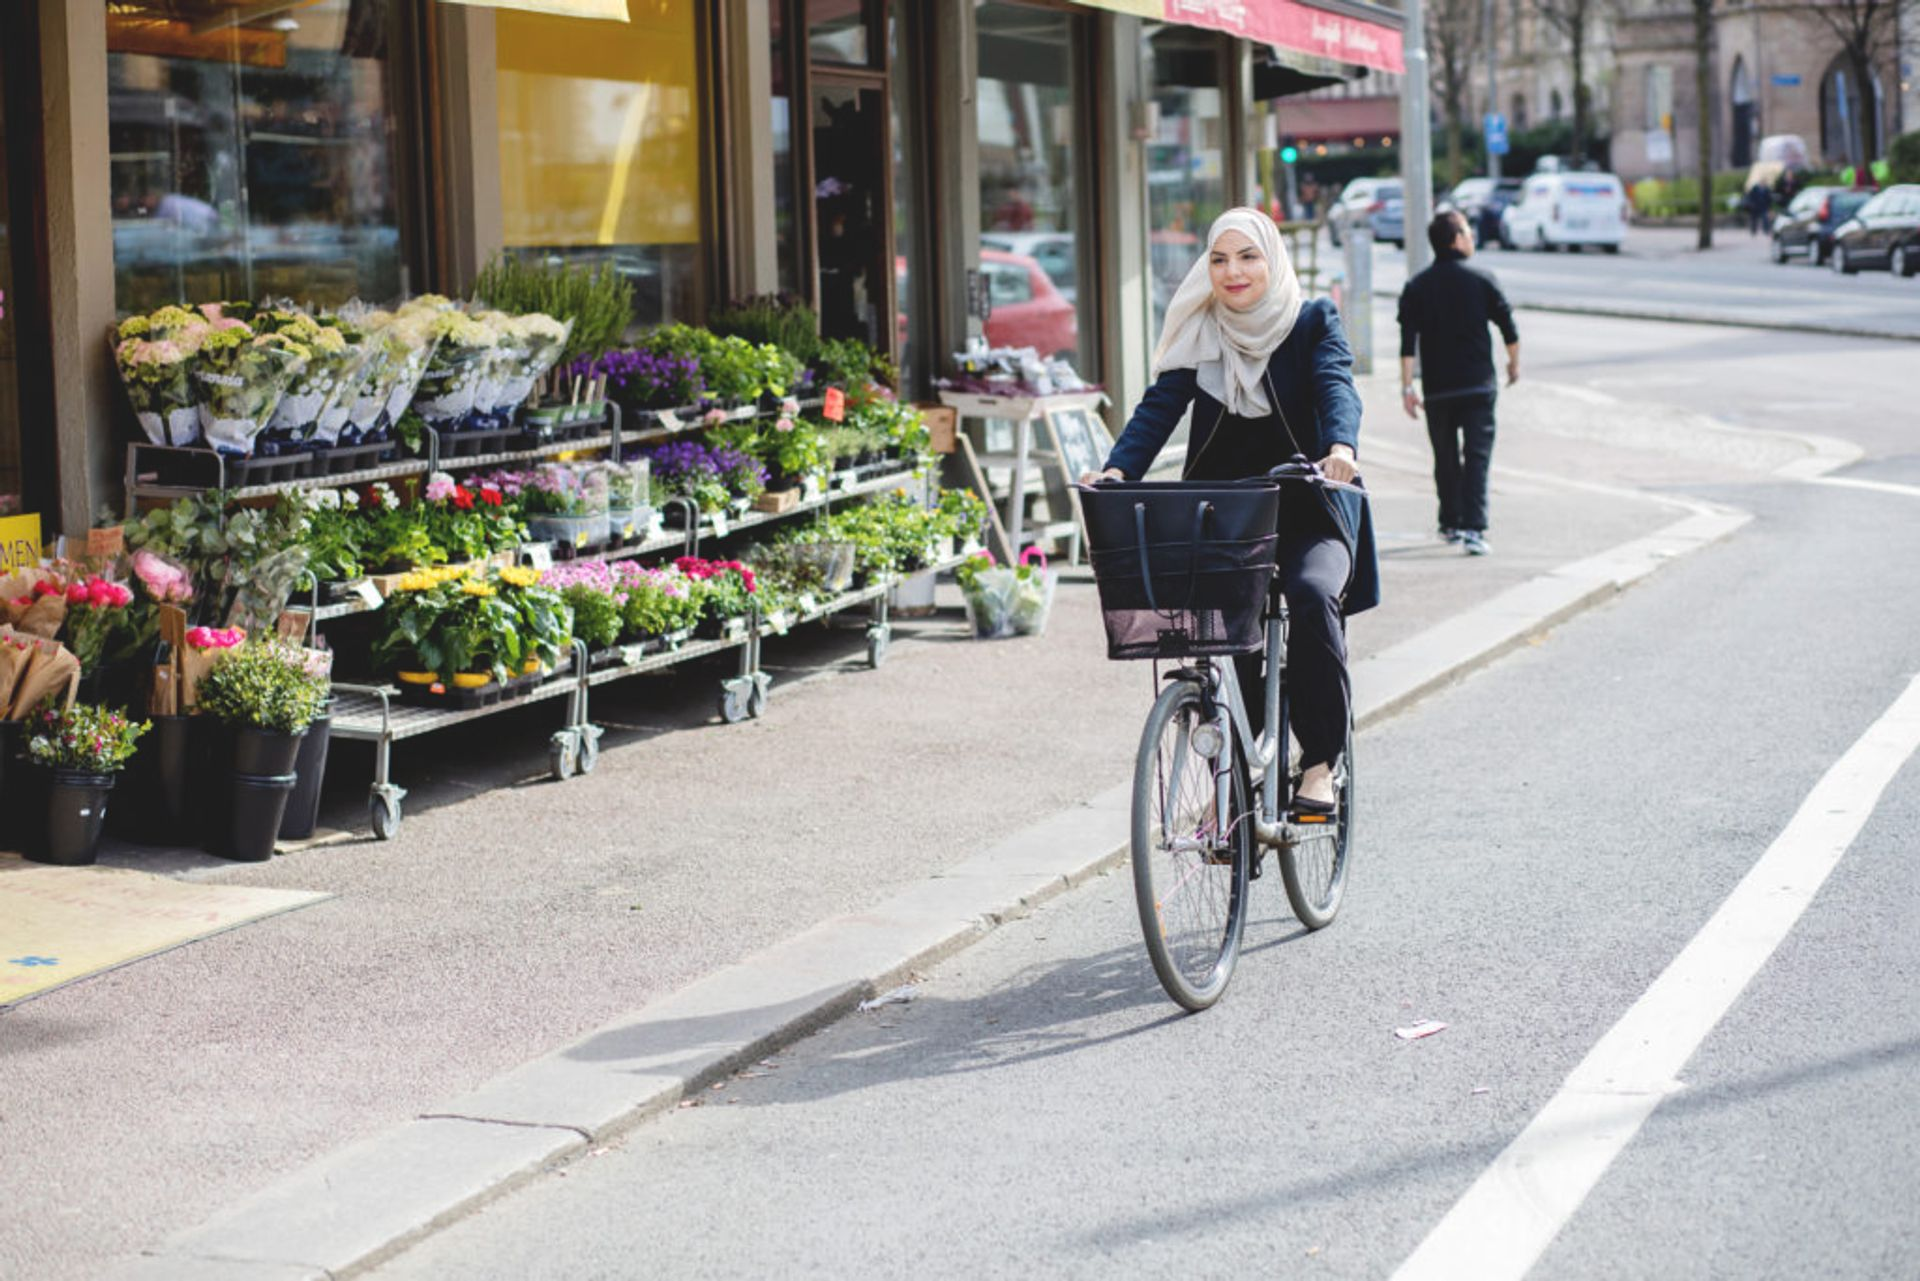 Person cycling in a bicycle lane.